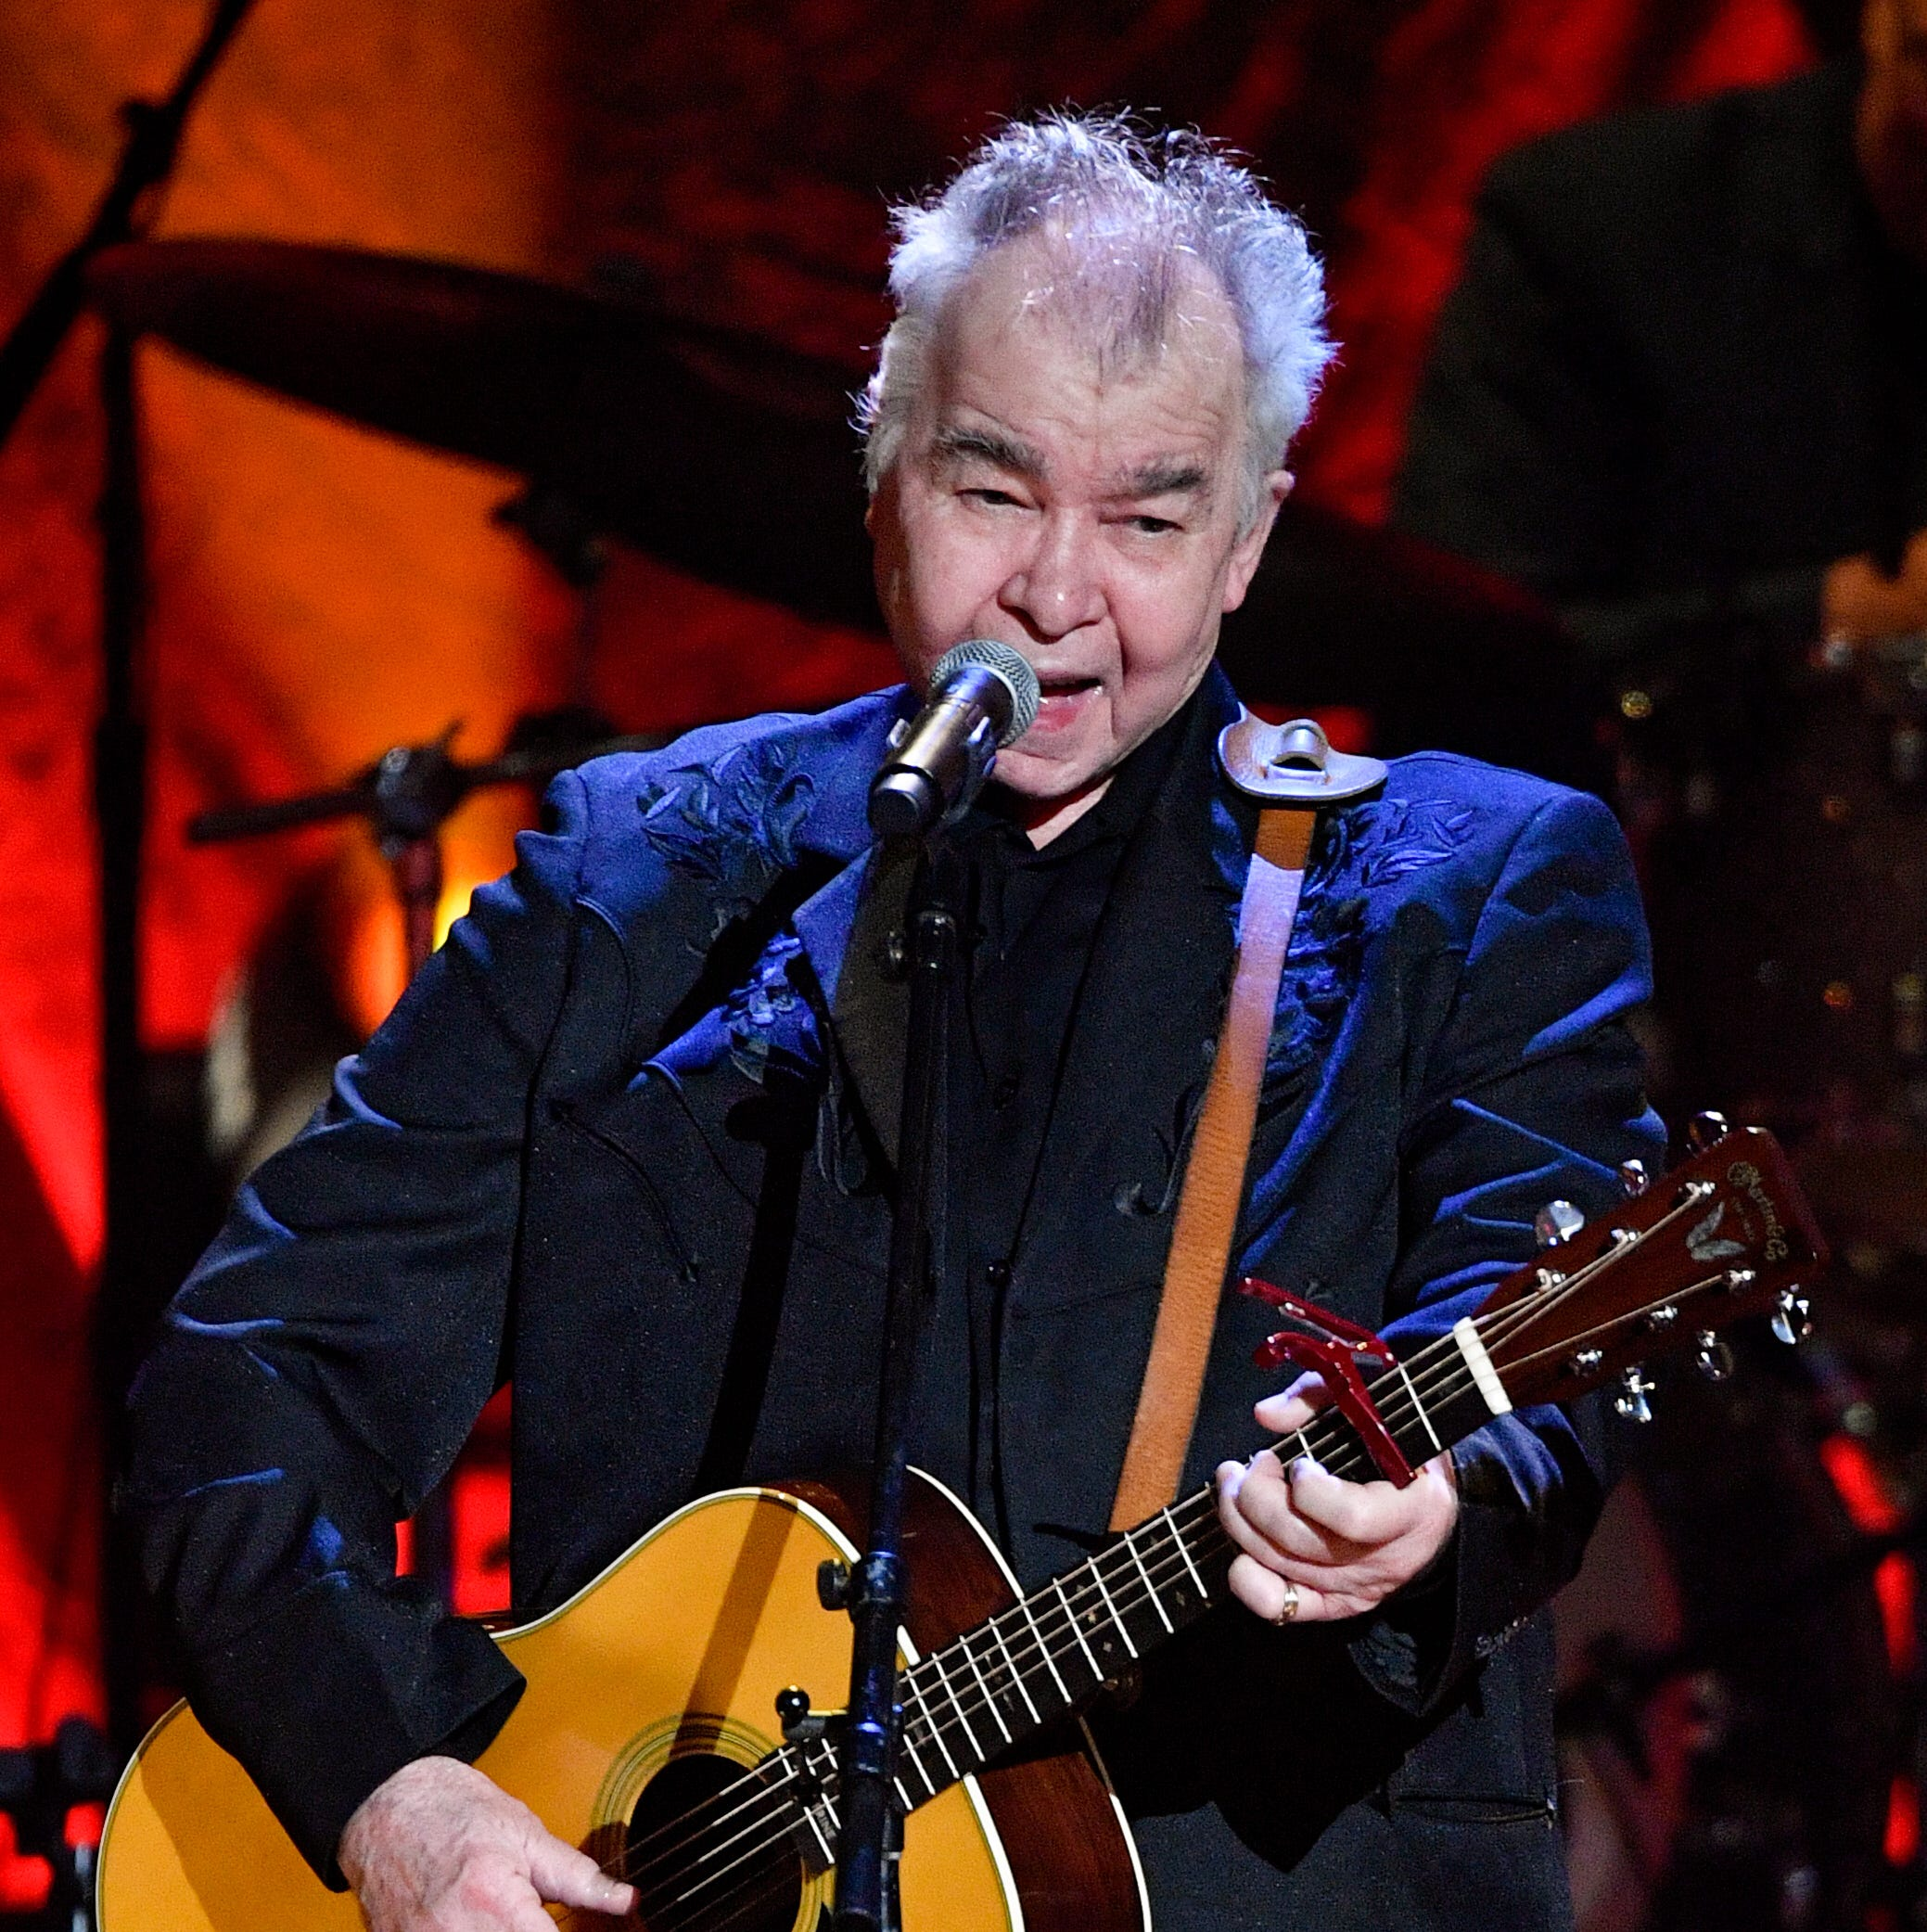 Grimey's to host John Prine Q&A, signing